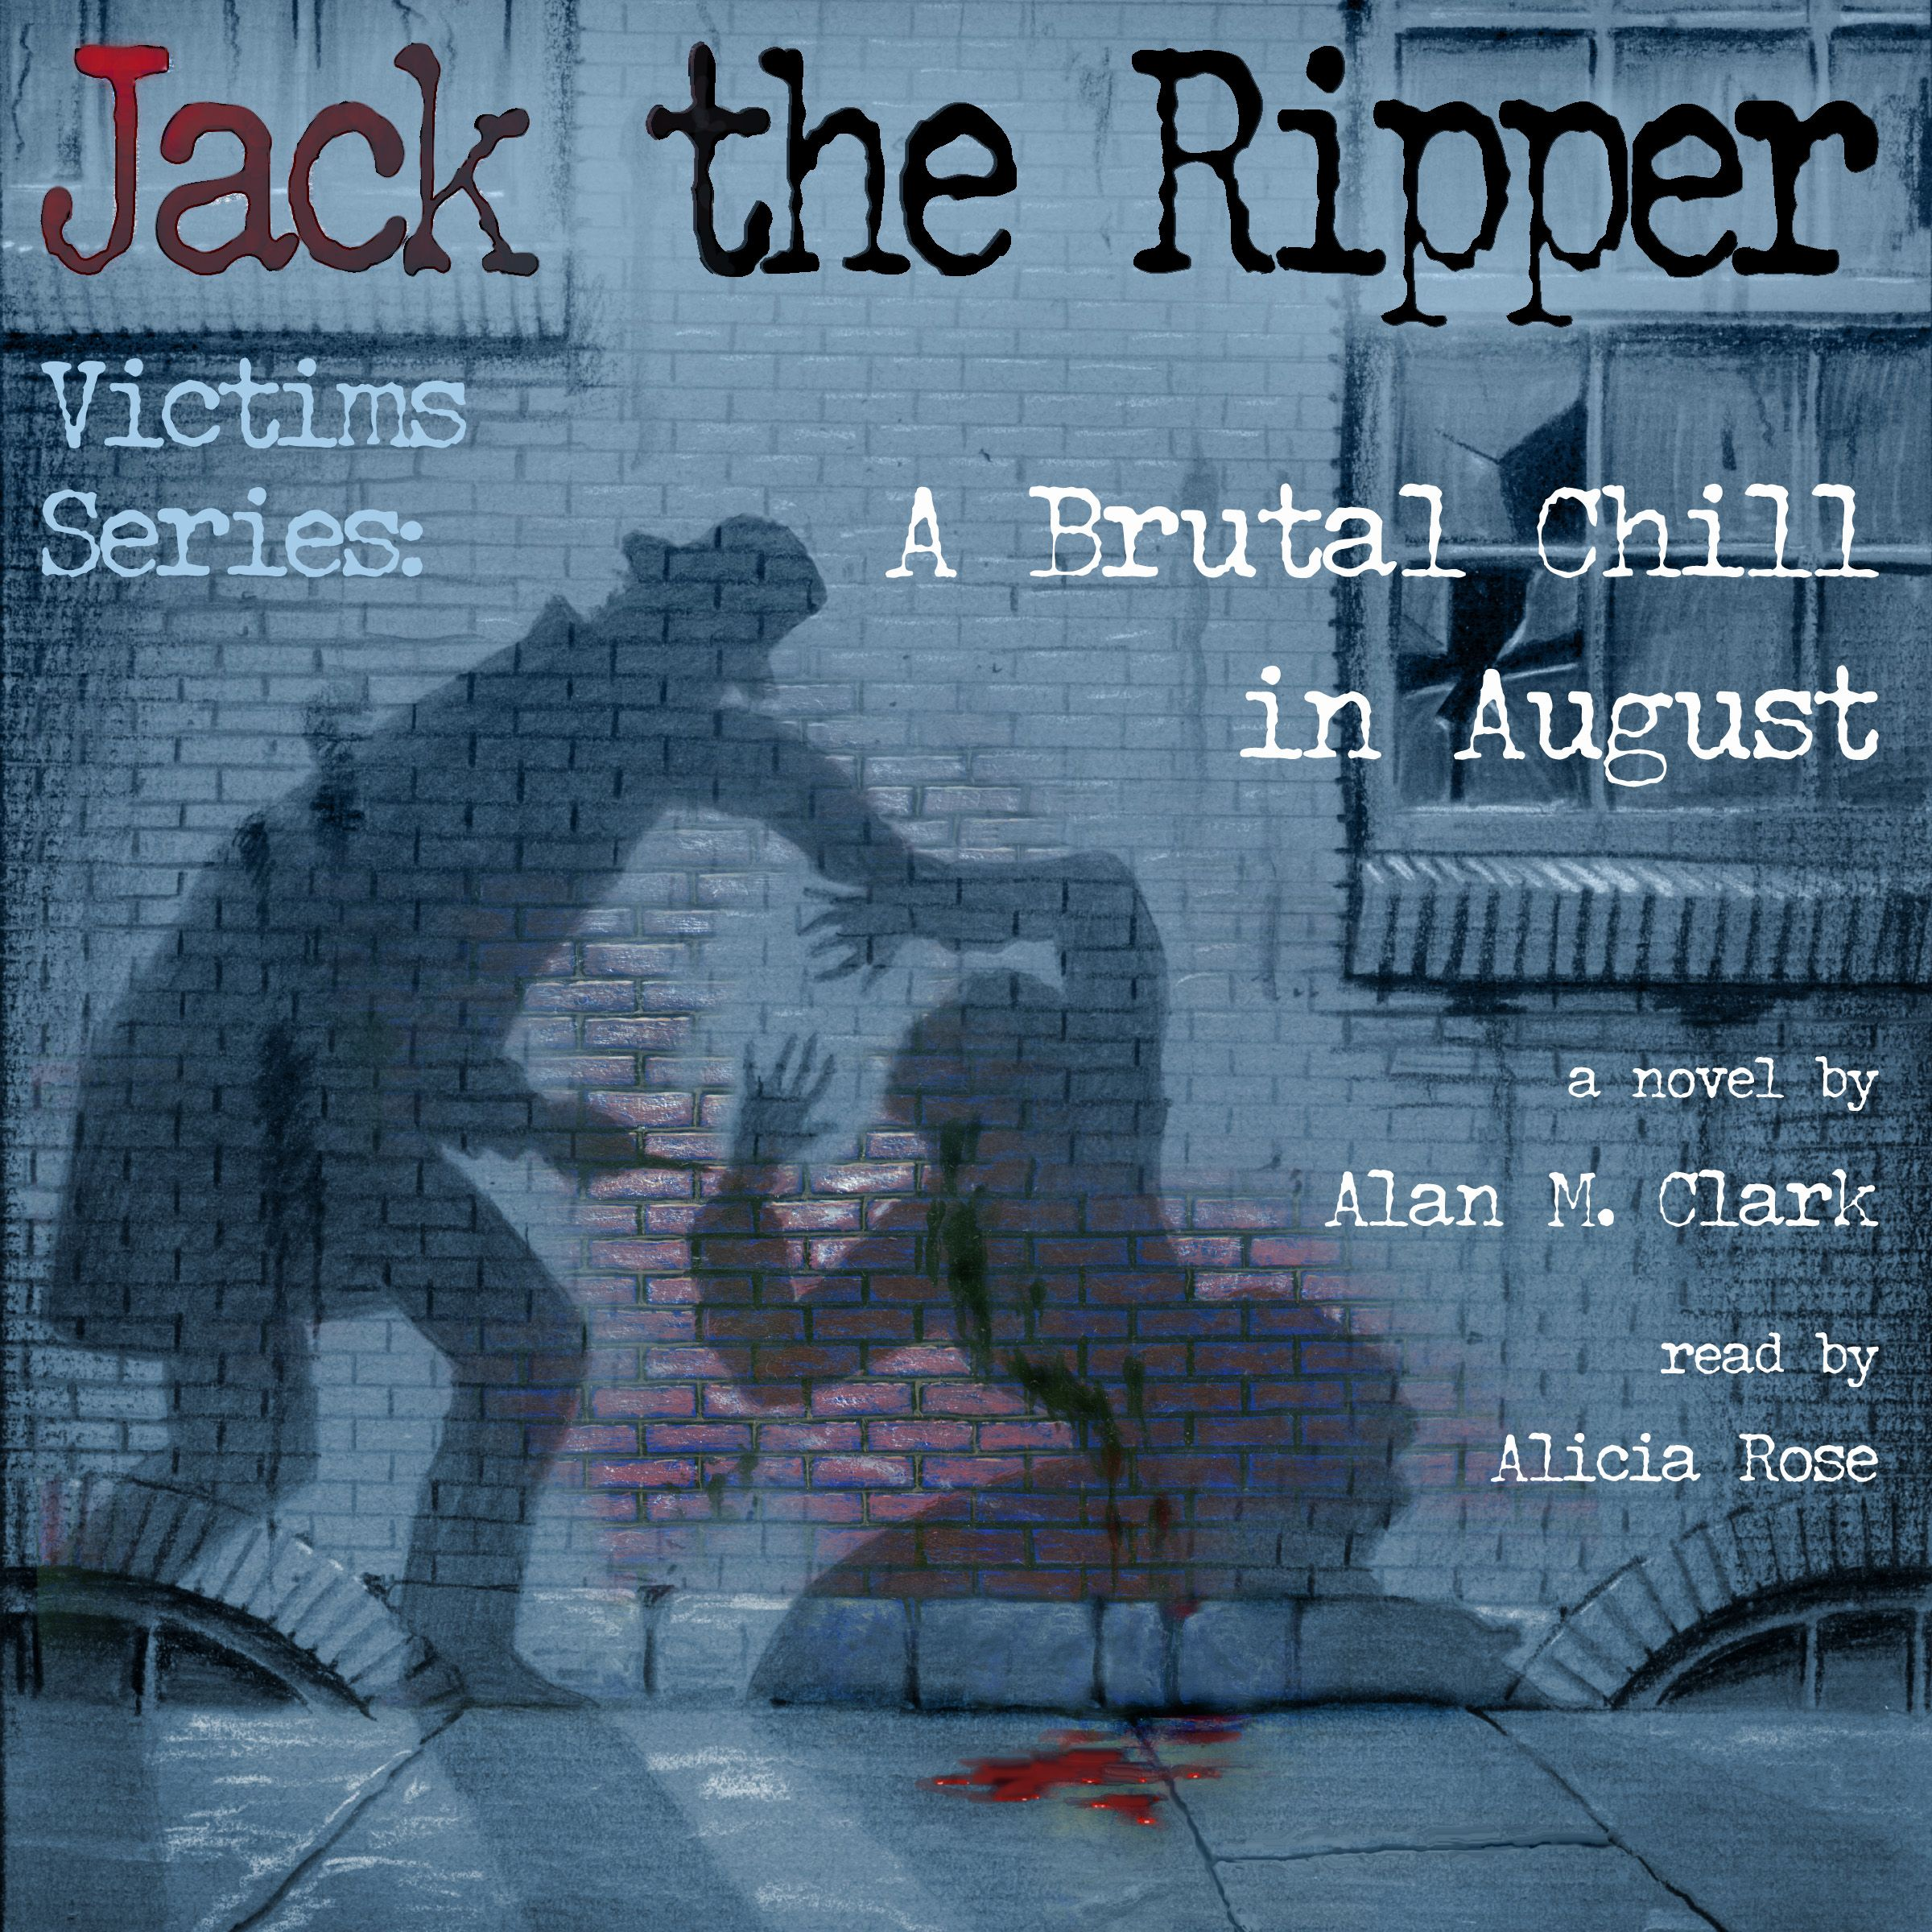 A brutal chill in august as part of the jack the ripper